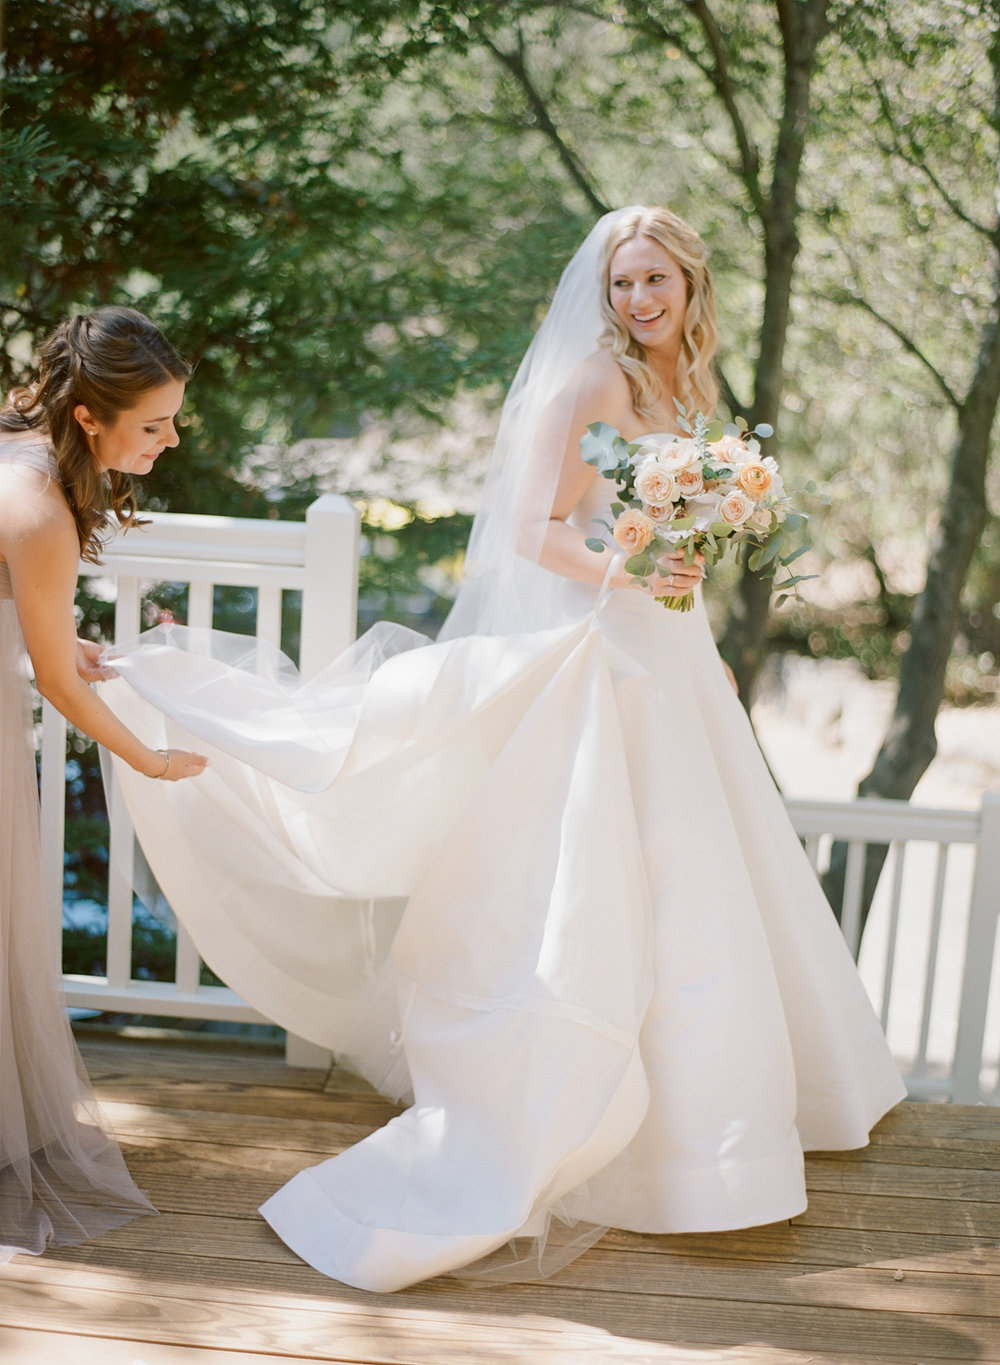 The bride gets ready before the ceremony at Beaulieu Gardens in St. Helena; Sylvie Gil Photography